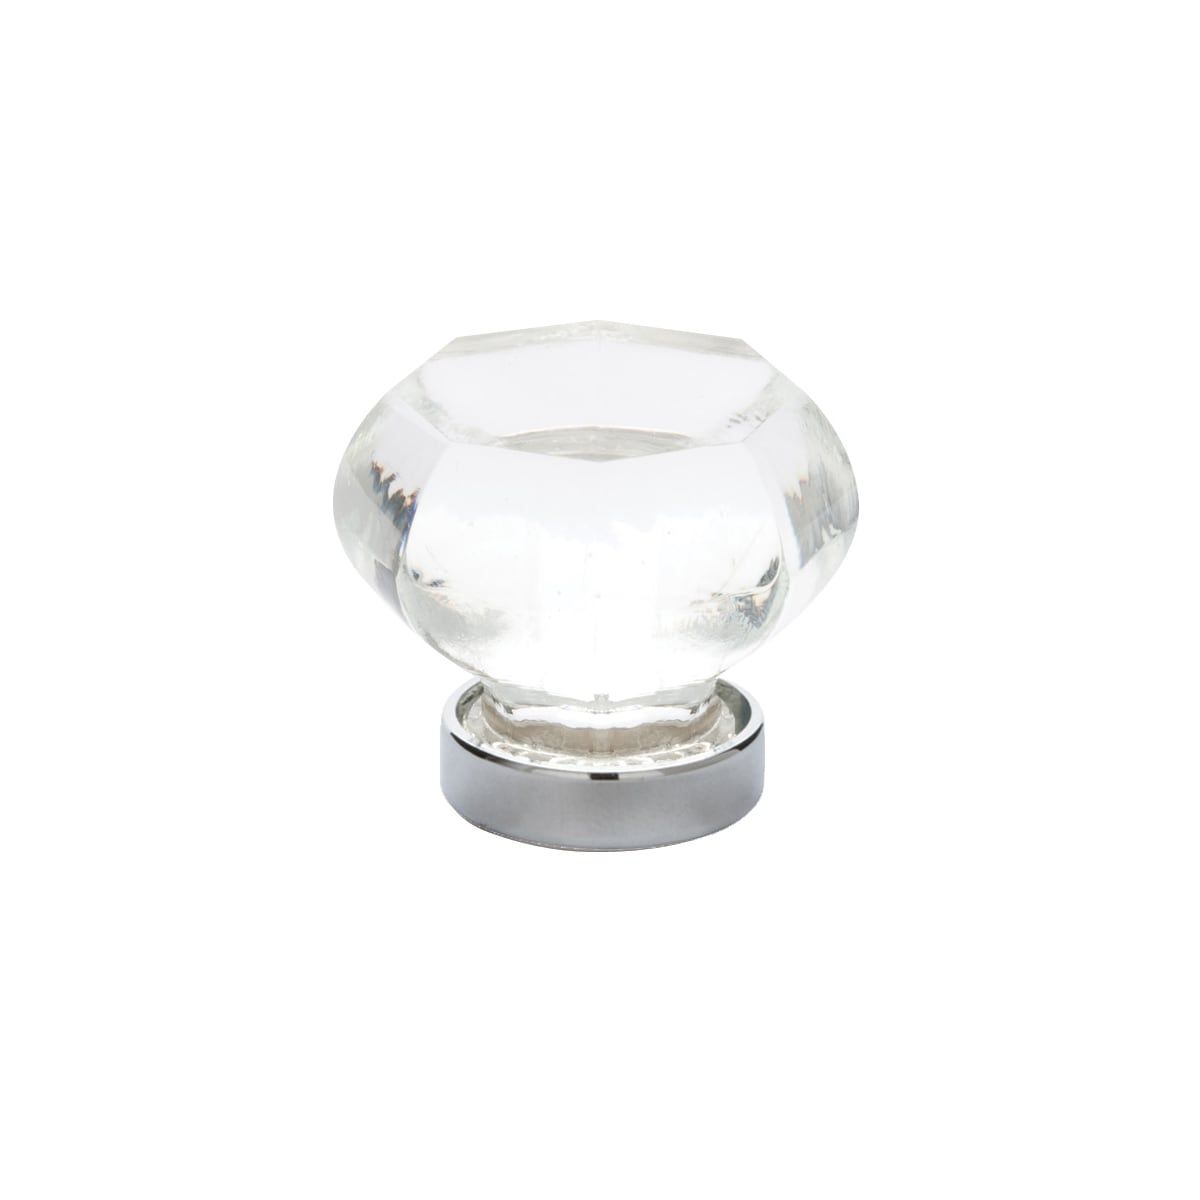 Emtek Crystal And Porcelain 1 Inch Geometric Cabinet Knob